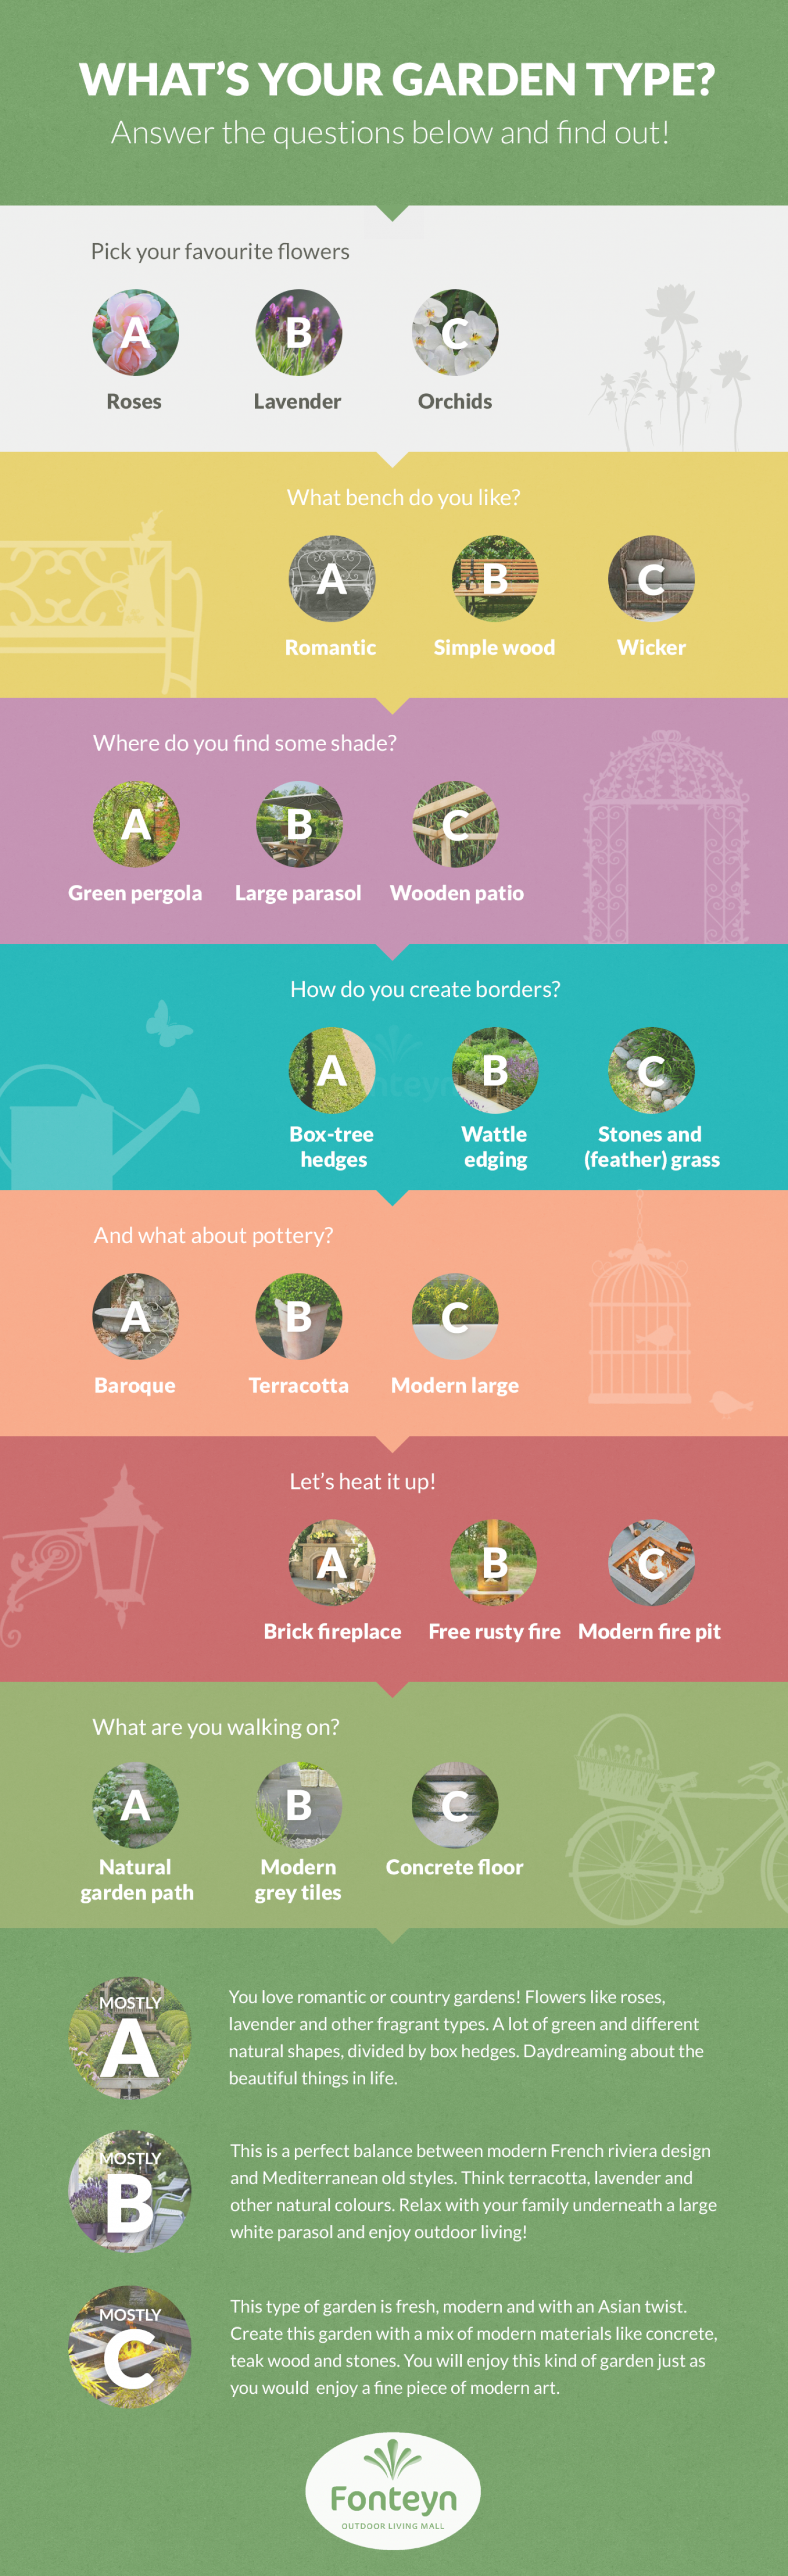 What's Your Garden Type? Infographic